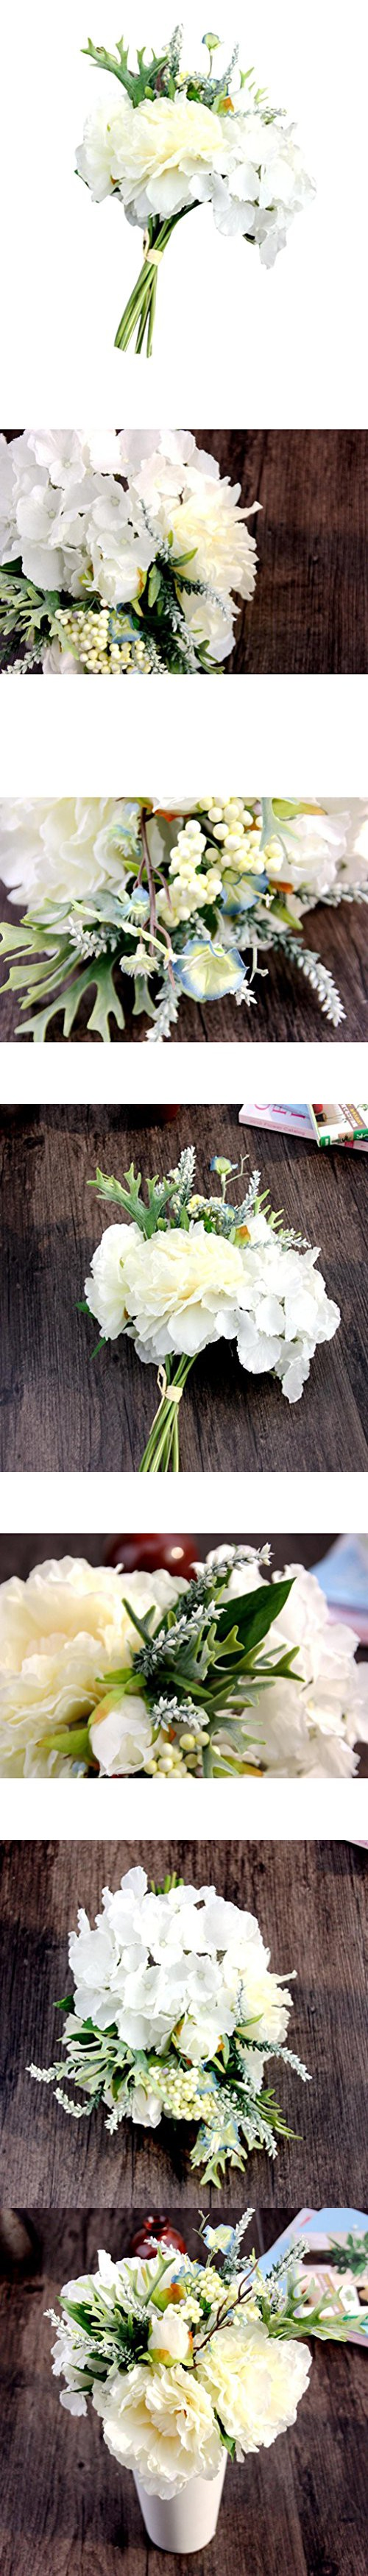 Fake flowersneartime silk leaf rose floral wedding bouquet party fake flowersneartime silk leaf rose floral wedding bouquet party home decor white izmirmasajfo